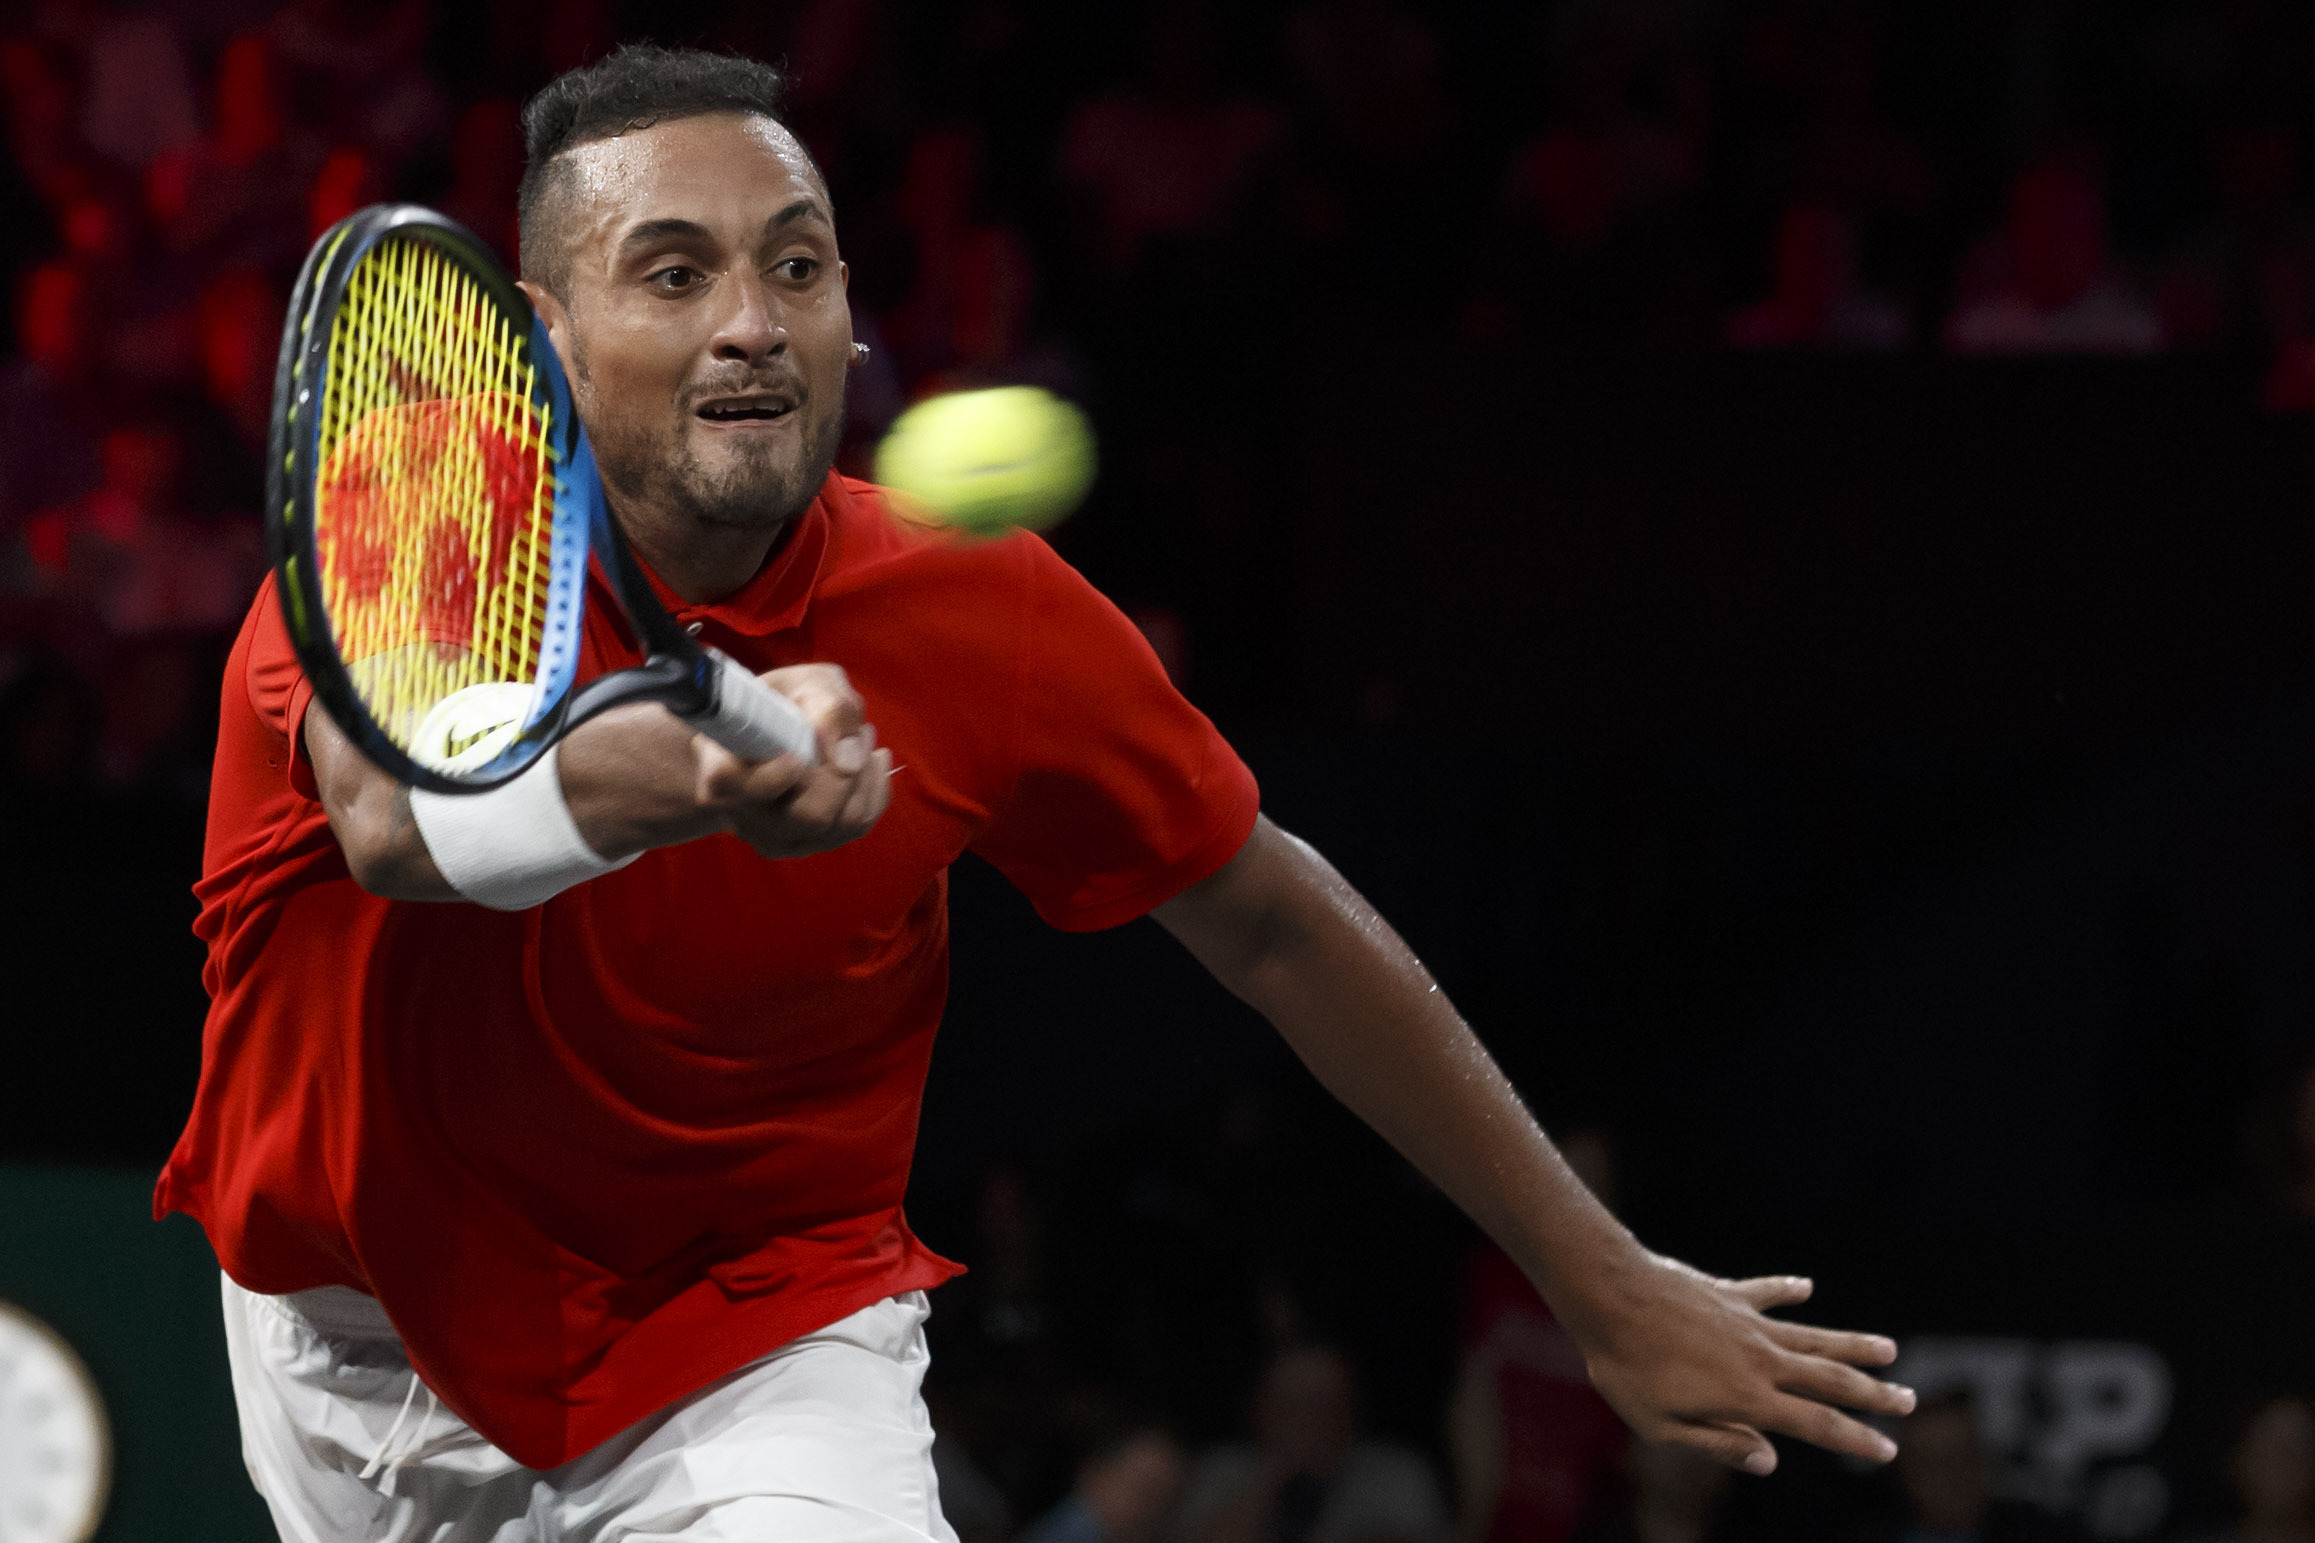 Nick Kyrgios tennis